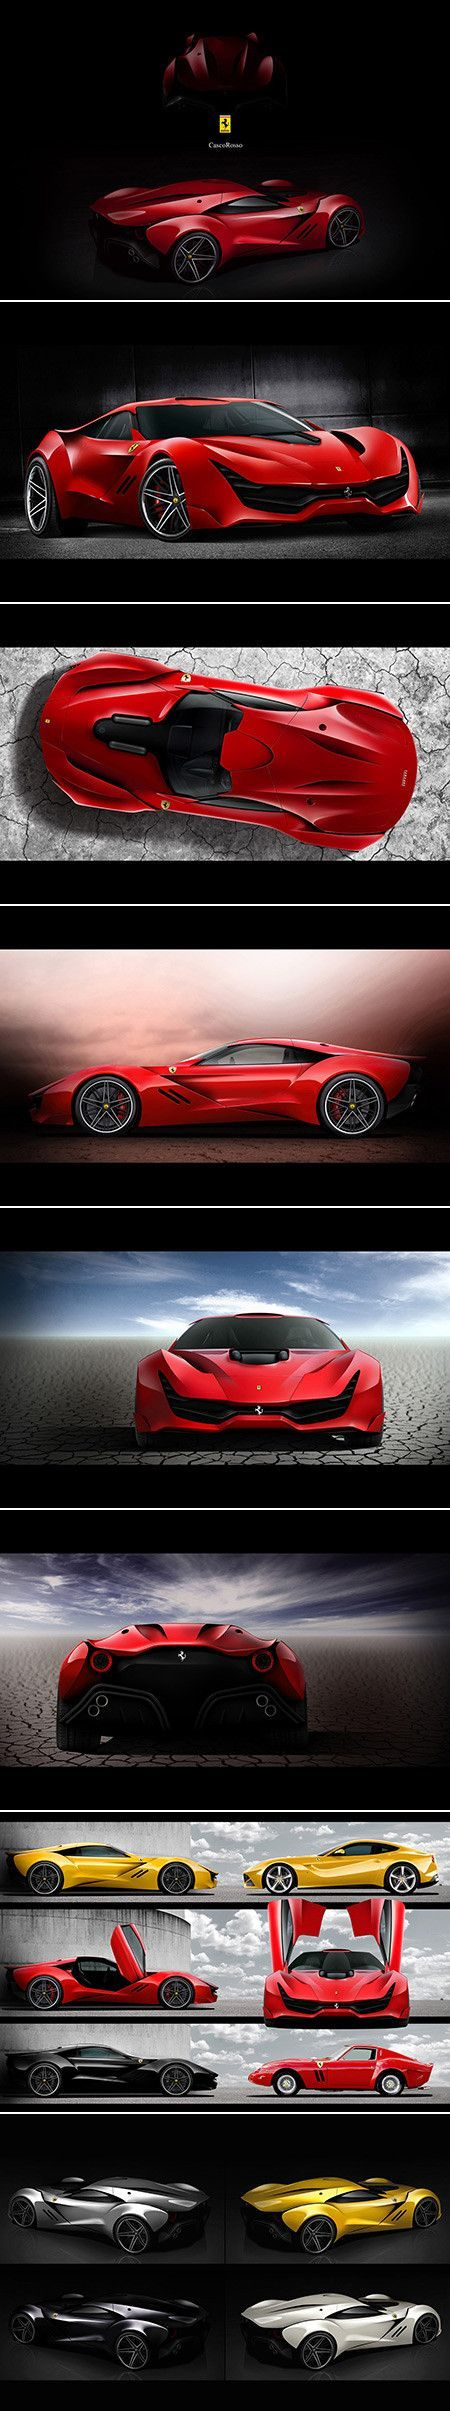 8 Amazing Pictures of the Sleek Ferrari CascoRosso - TechEBlog: